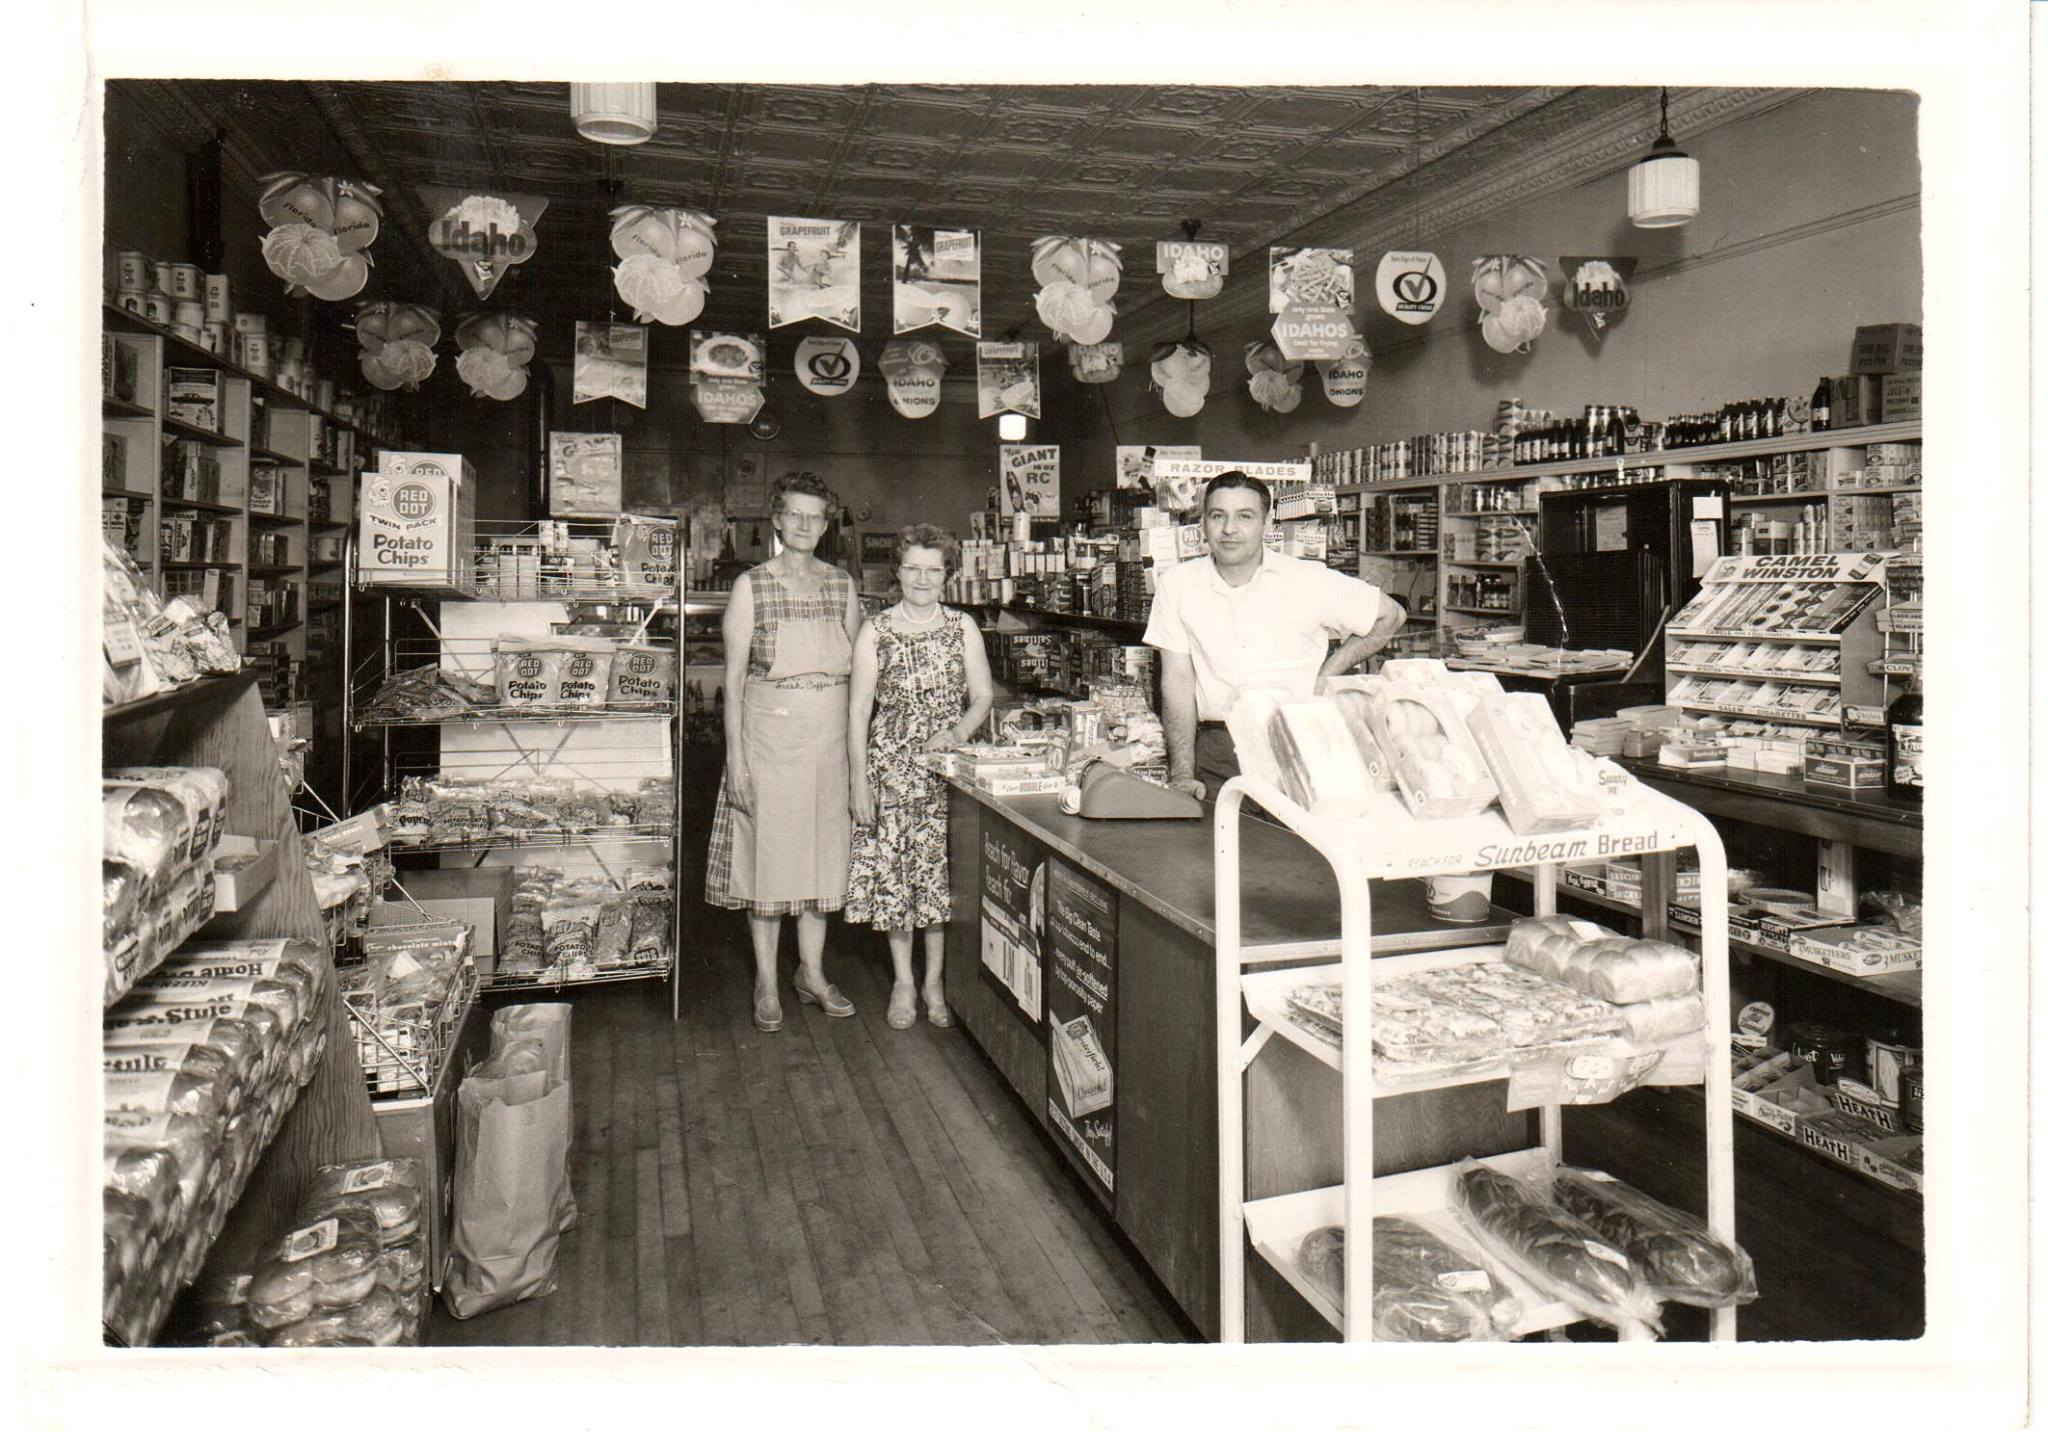 Howard Bushaw grocery